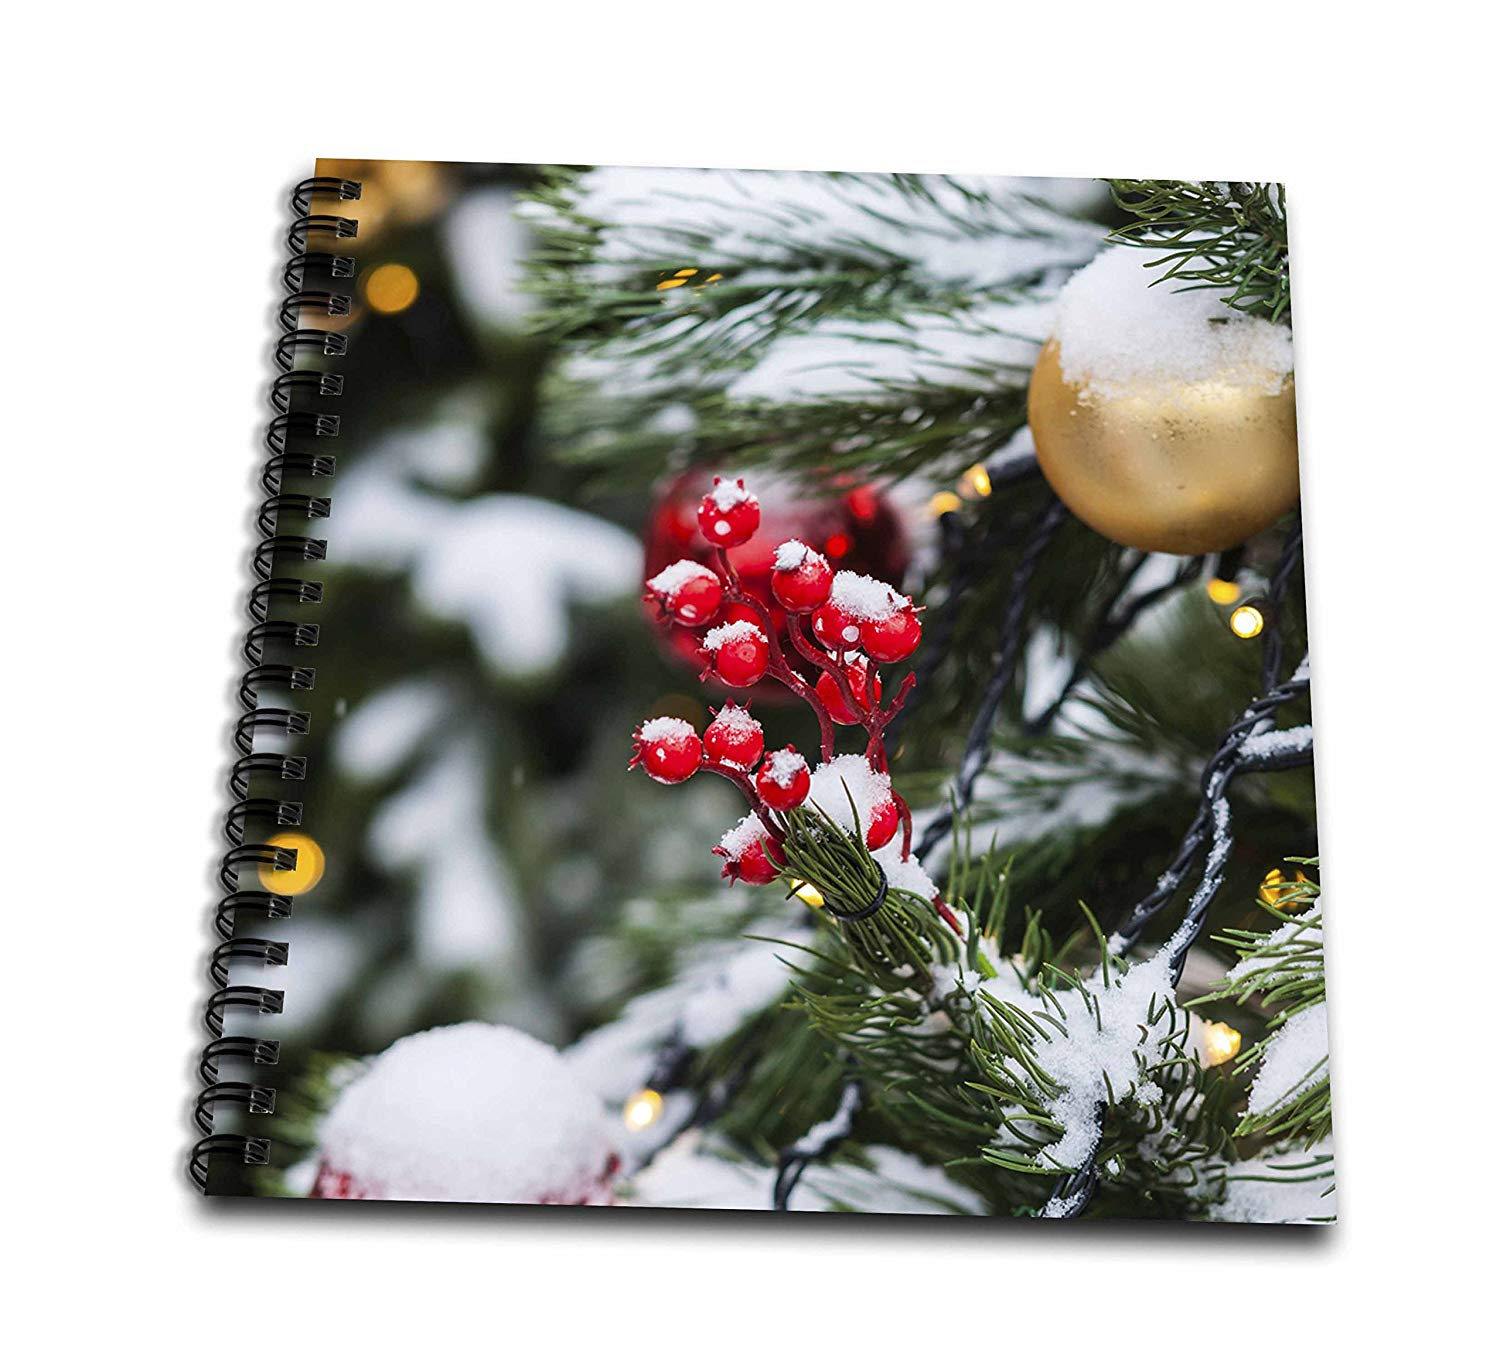 3dRose Alexis Photography - Holidays Christmas - Closeup view of a Christmas decoration on a snow covered spruce tree - Drawing Book 8 x 8 inch (db_275967_1)